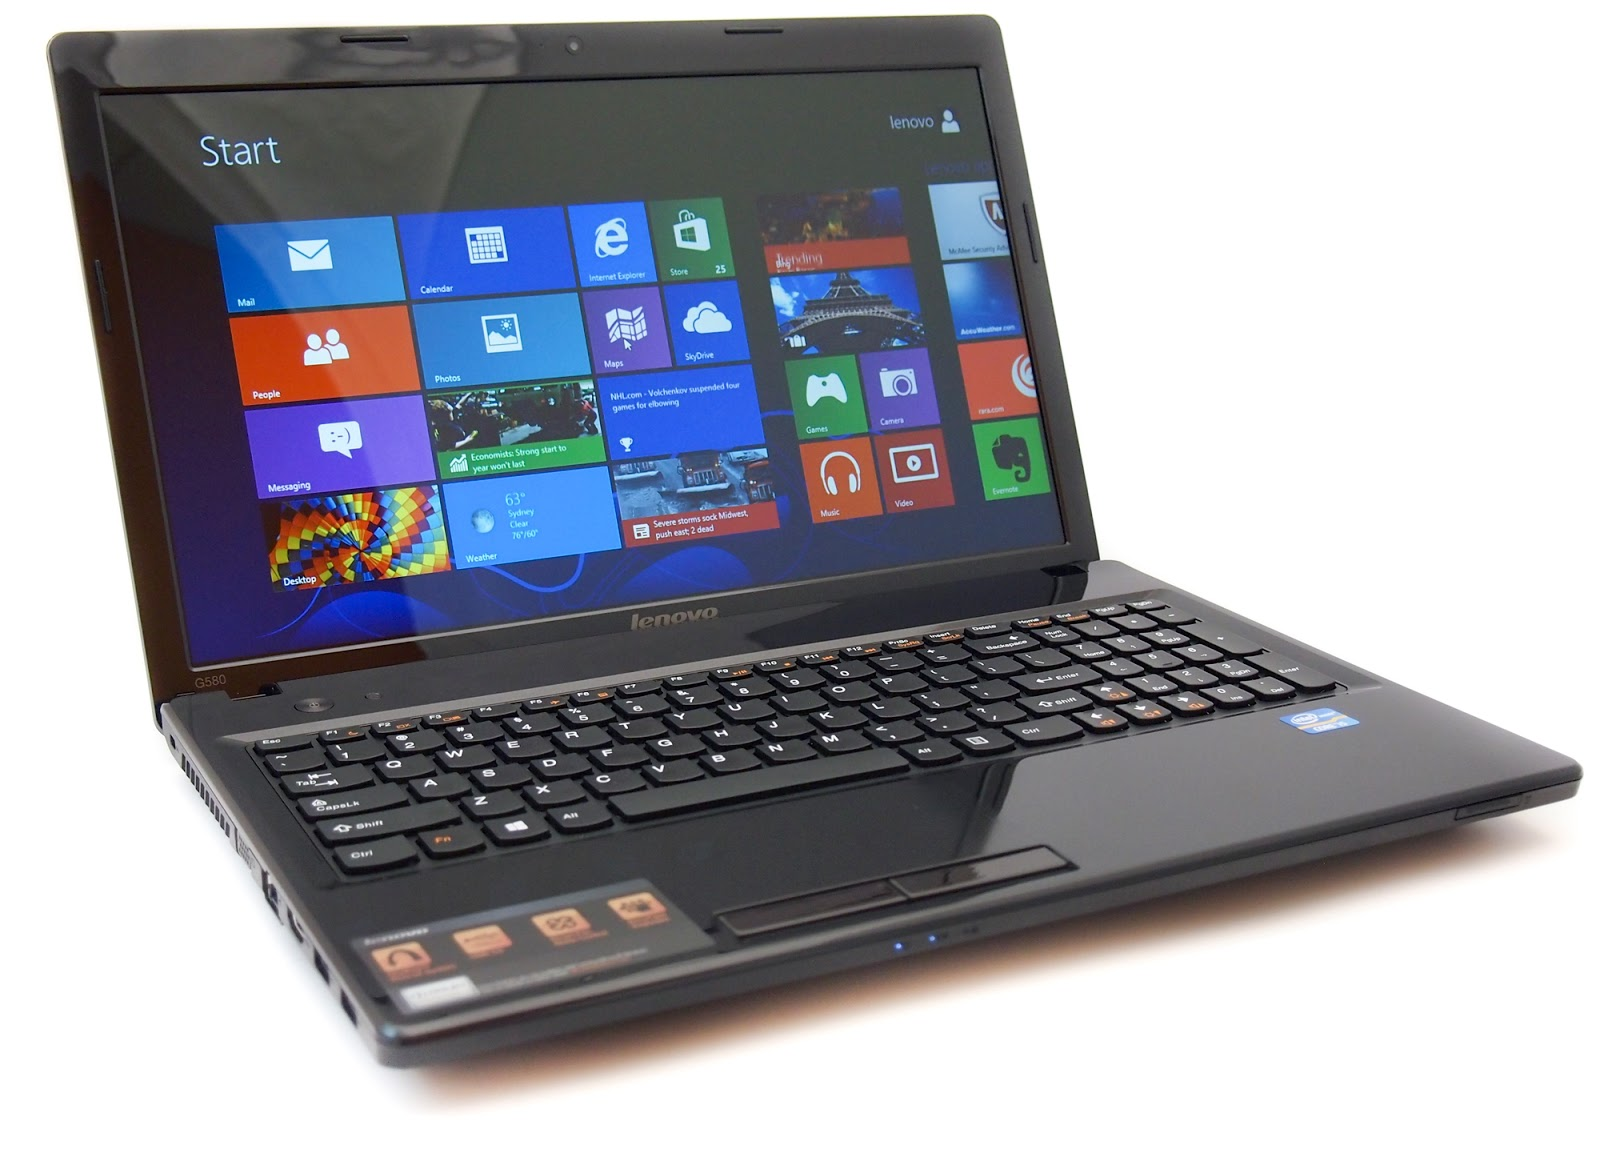 Download Lenovo G580 Drivers For Windows 8.1